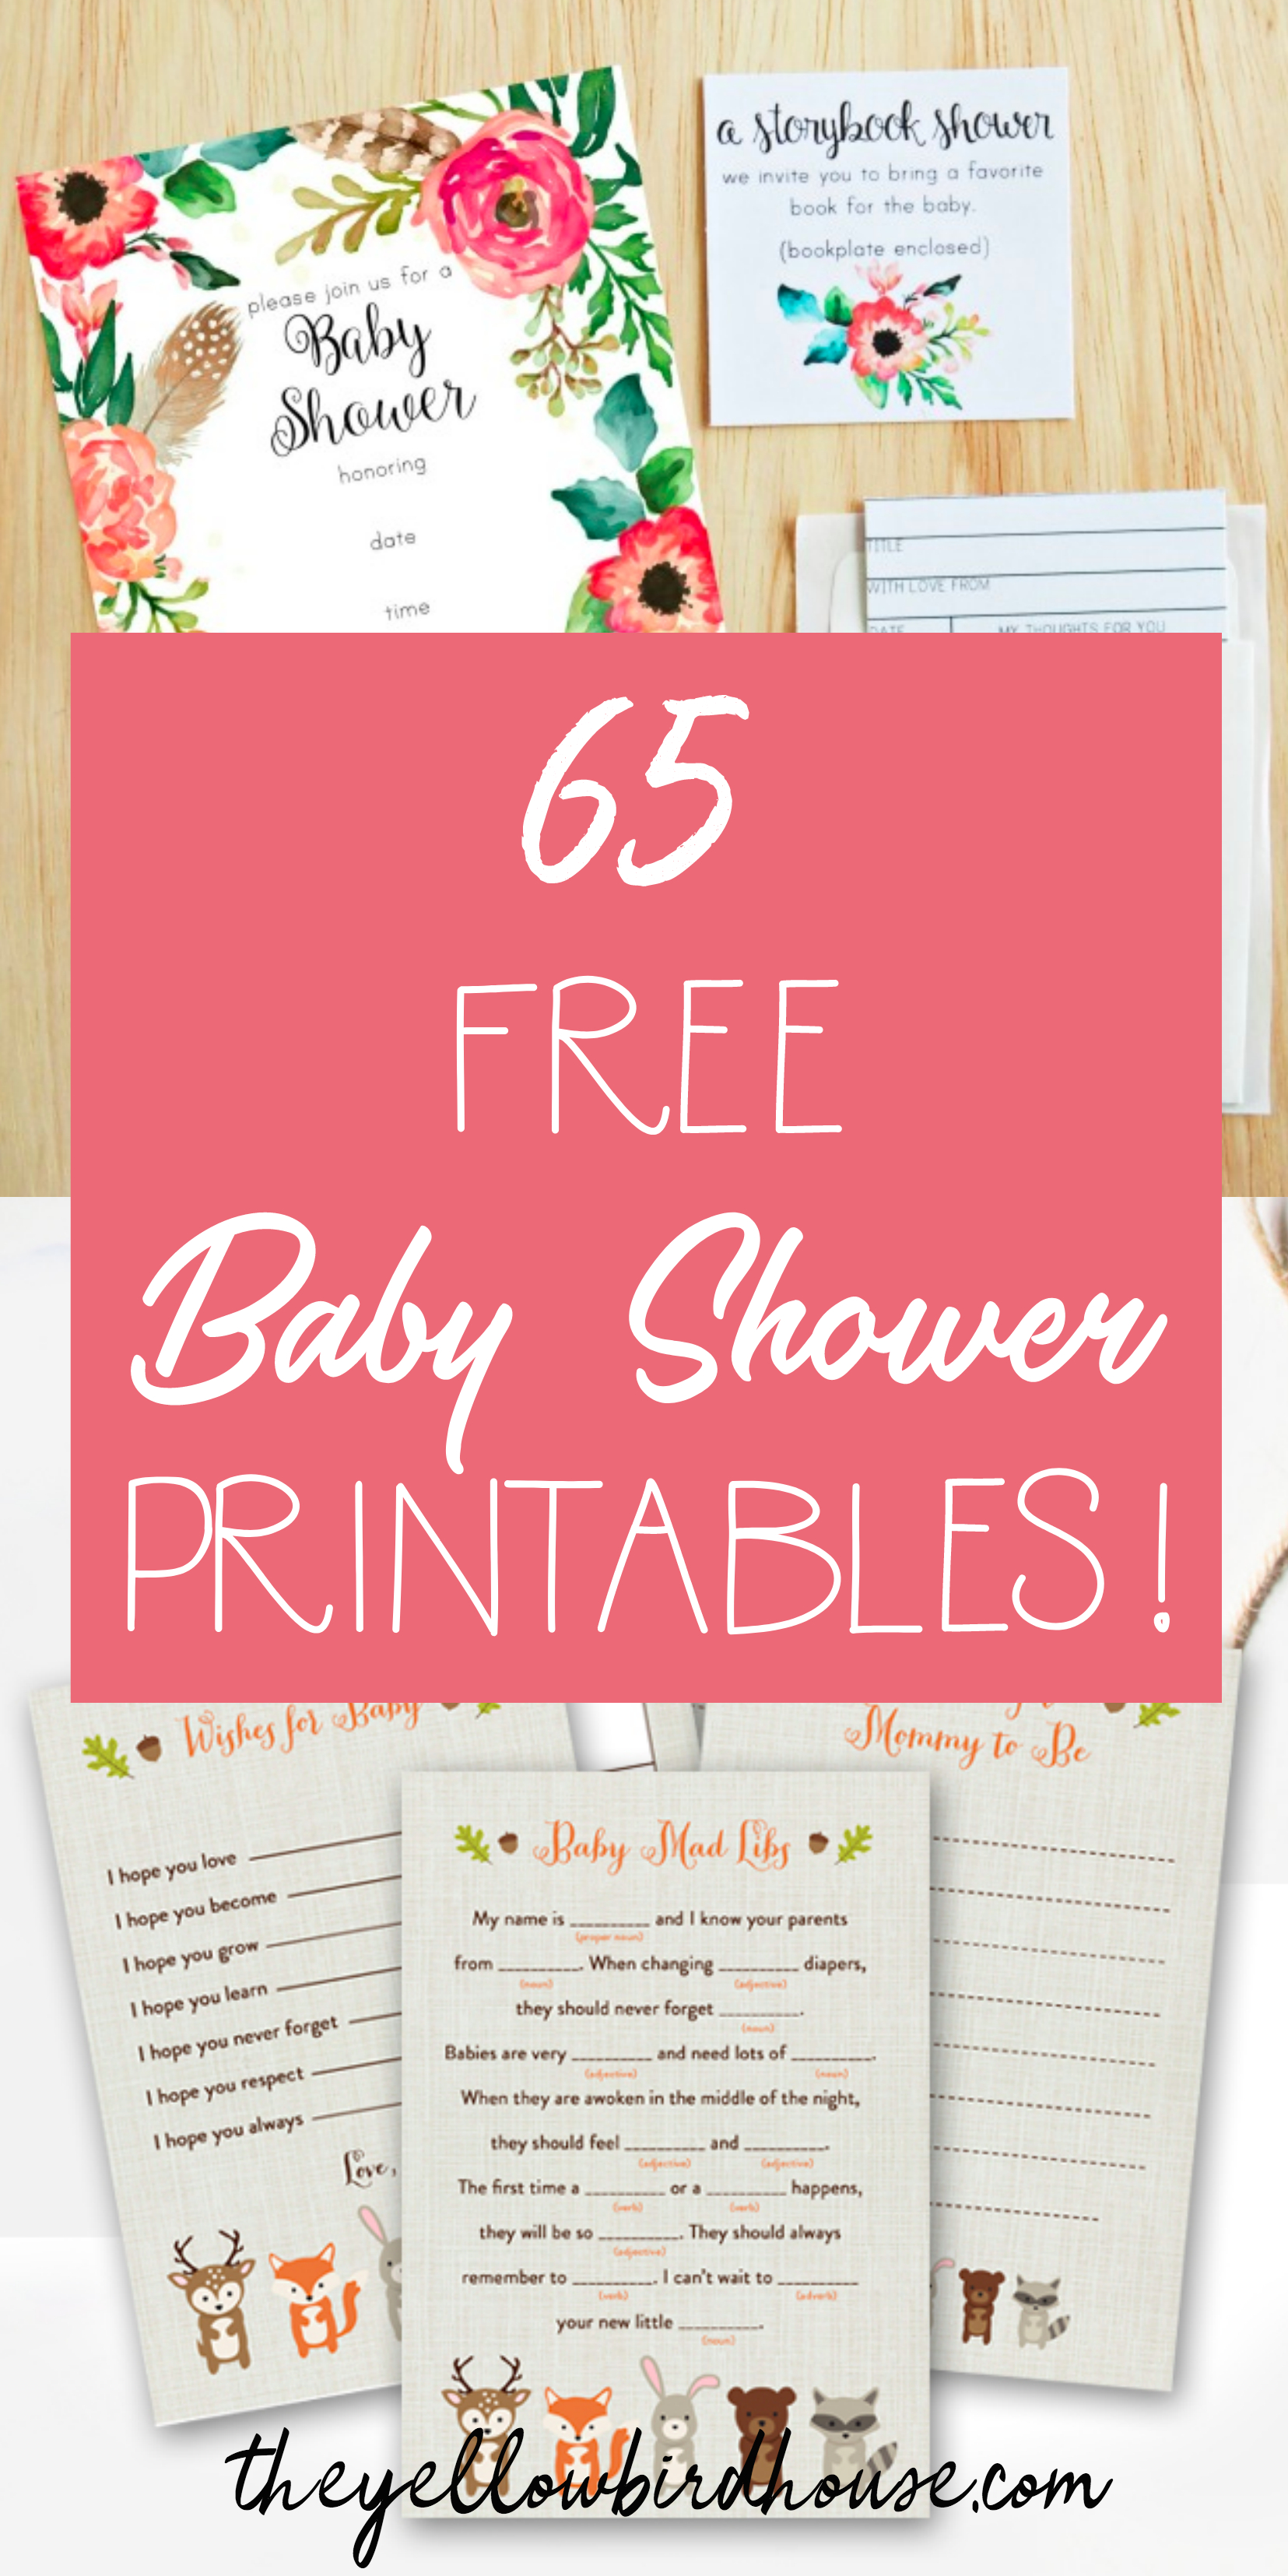 65 Free Baby Shower Printables For An Adorable Party - Free Baby Shower Printables